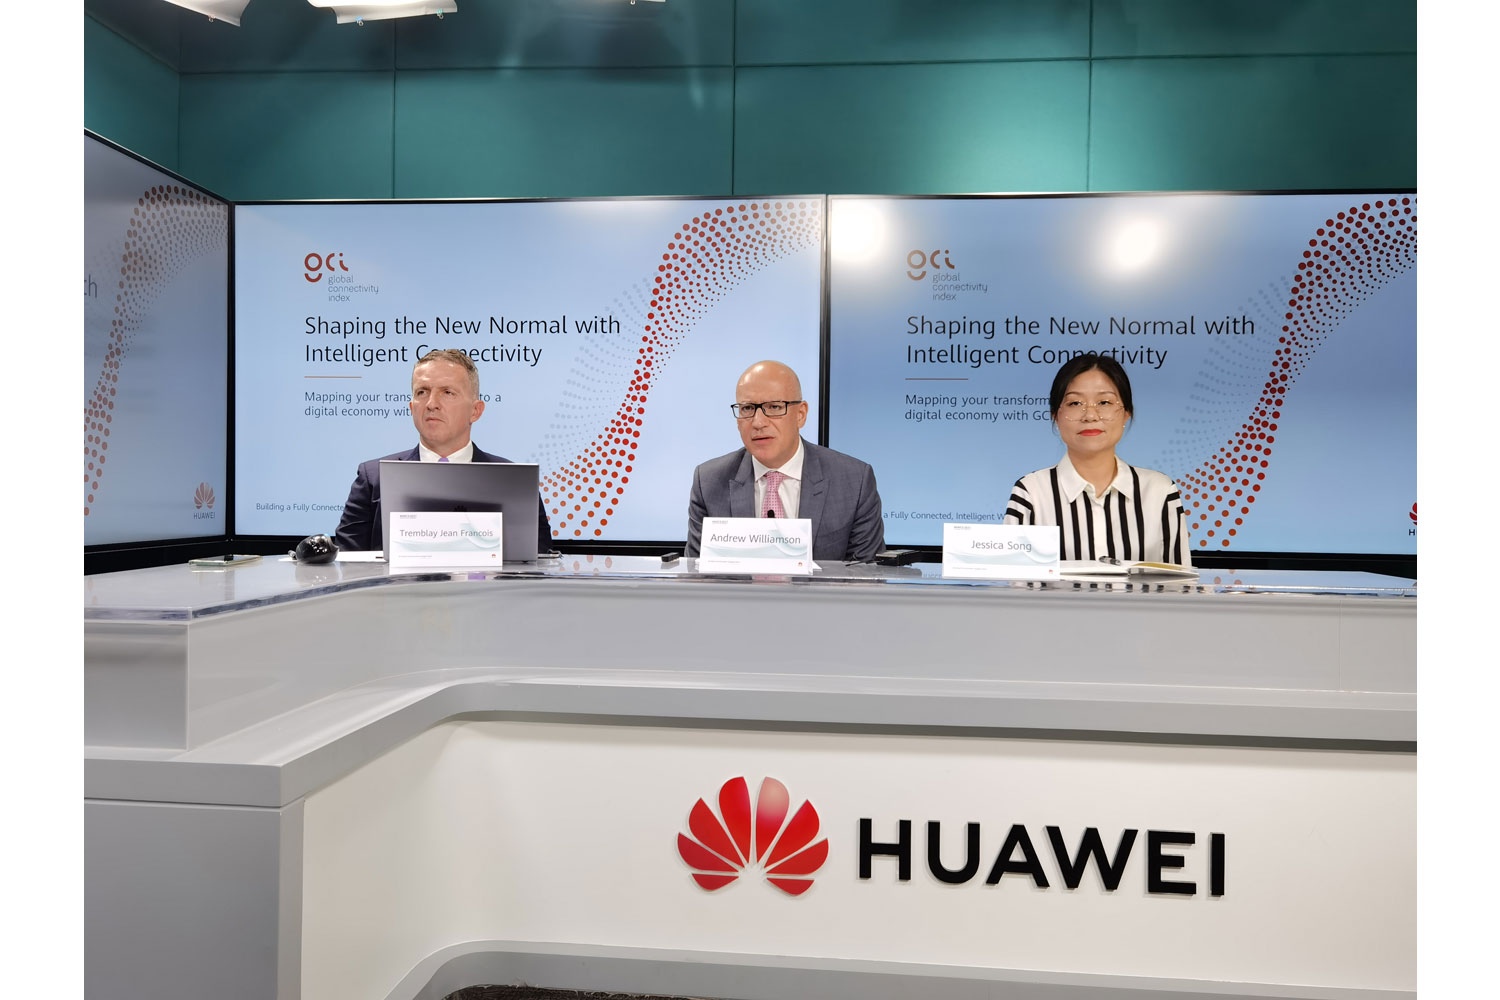 Huawei releases 7th annual Global Connectivity Index Report and proposes five key stages of industry digital transformation